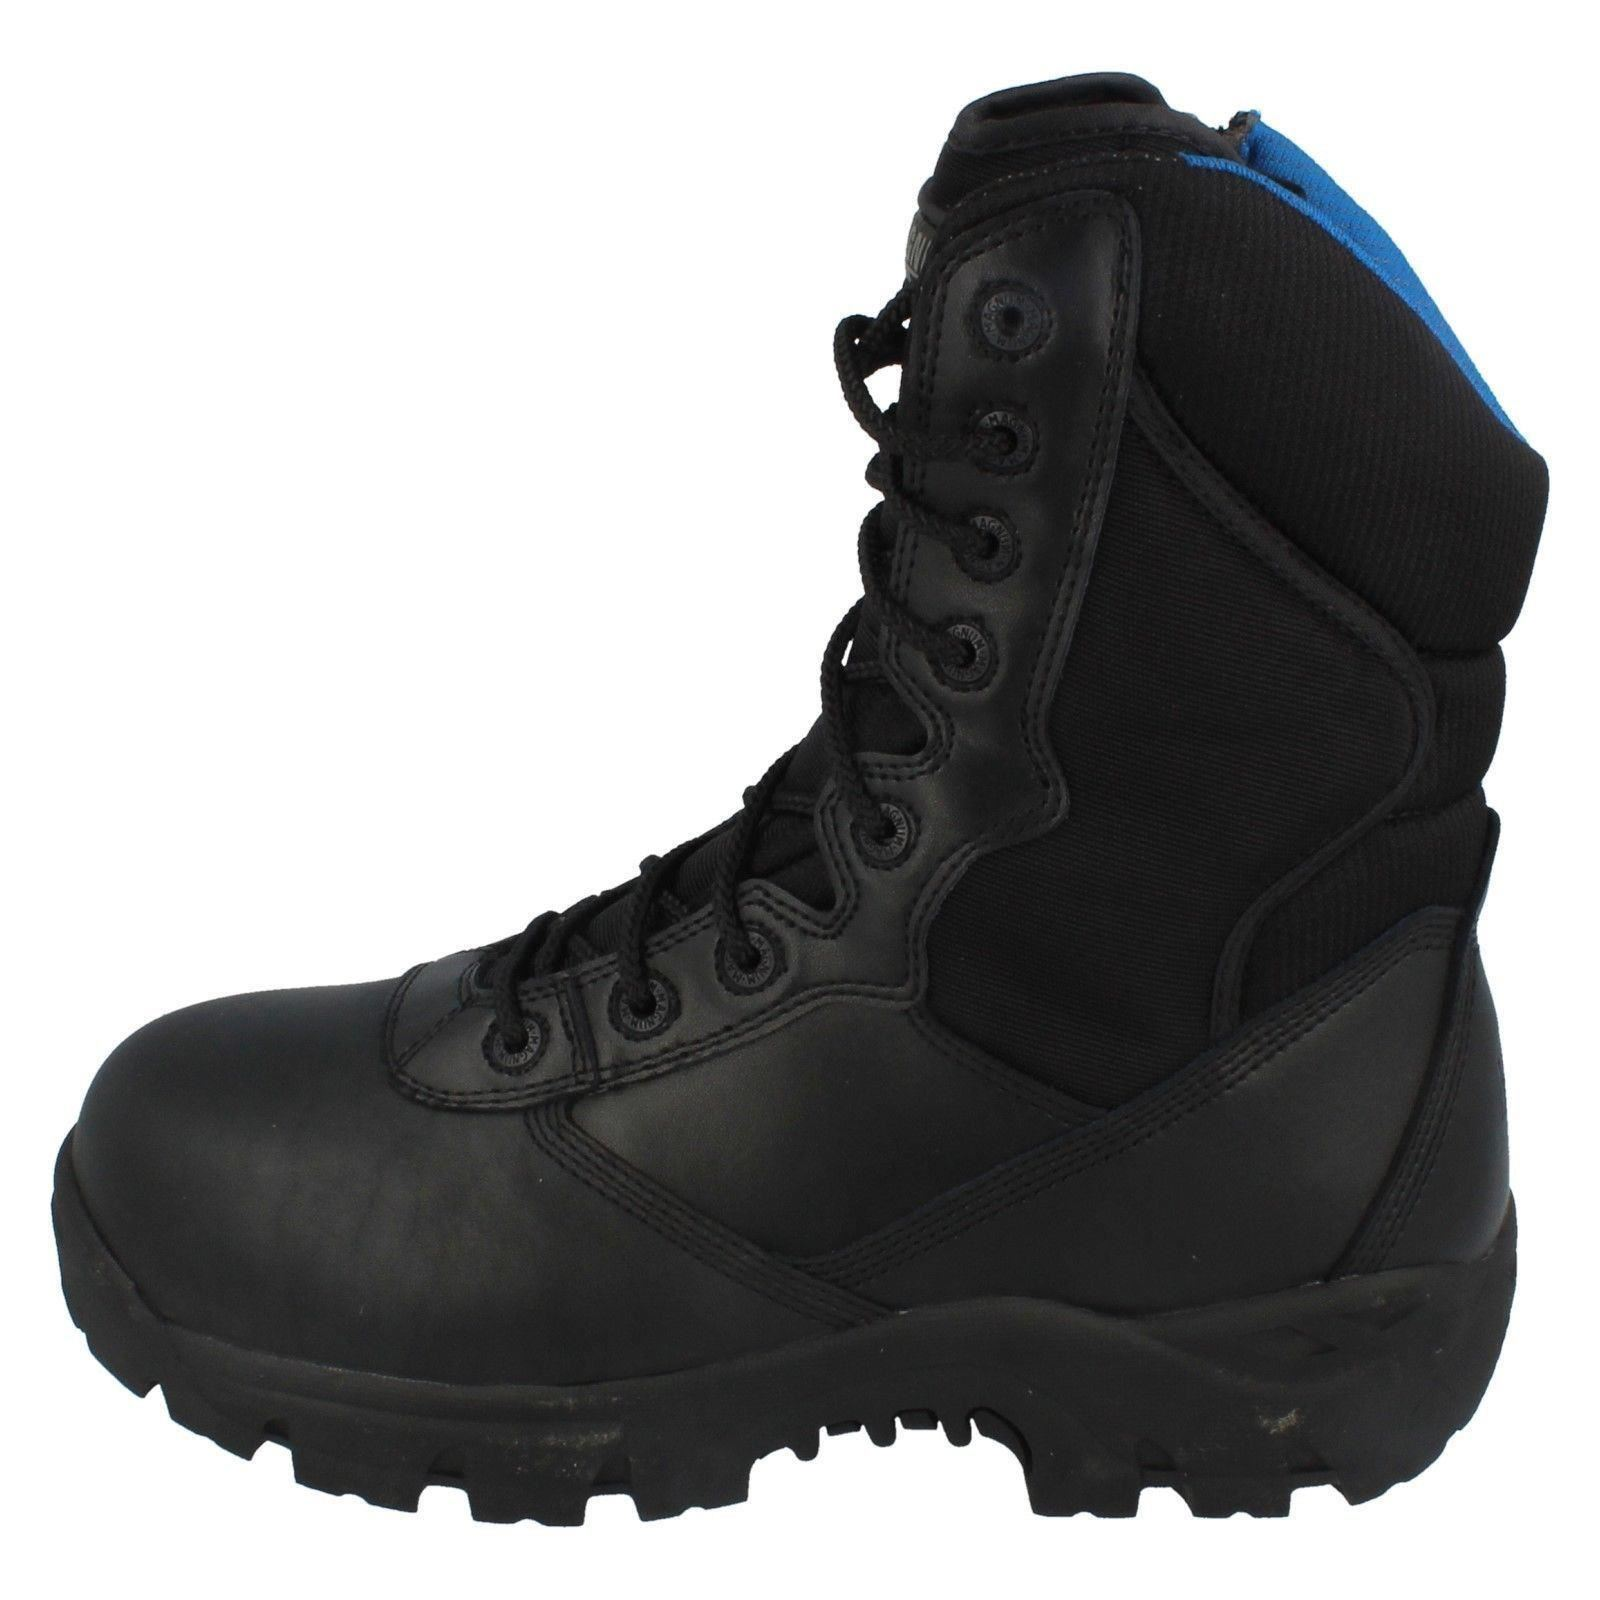 Mens Label Magnum 'Phantom' Safety Work Boots Label Mens ~ K 950d1a